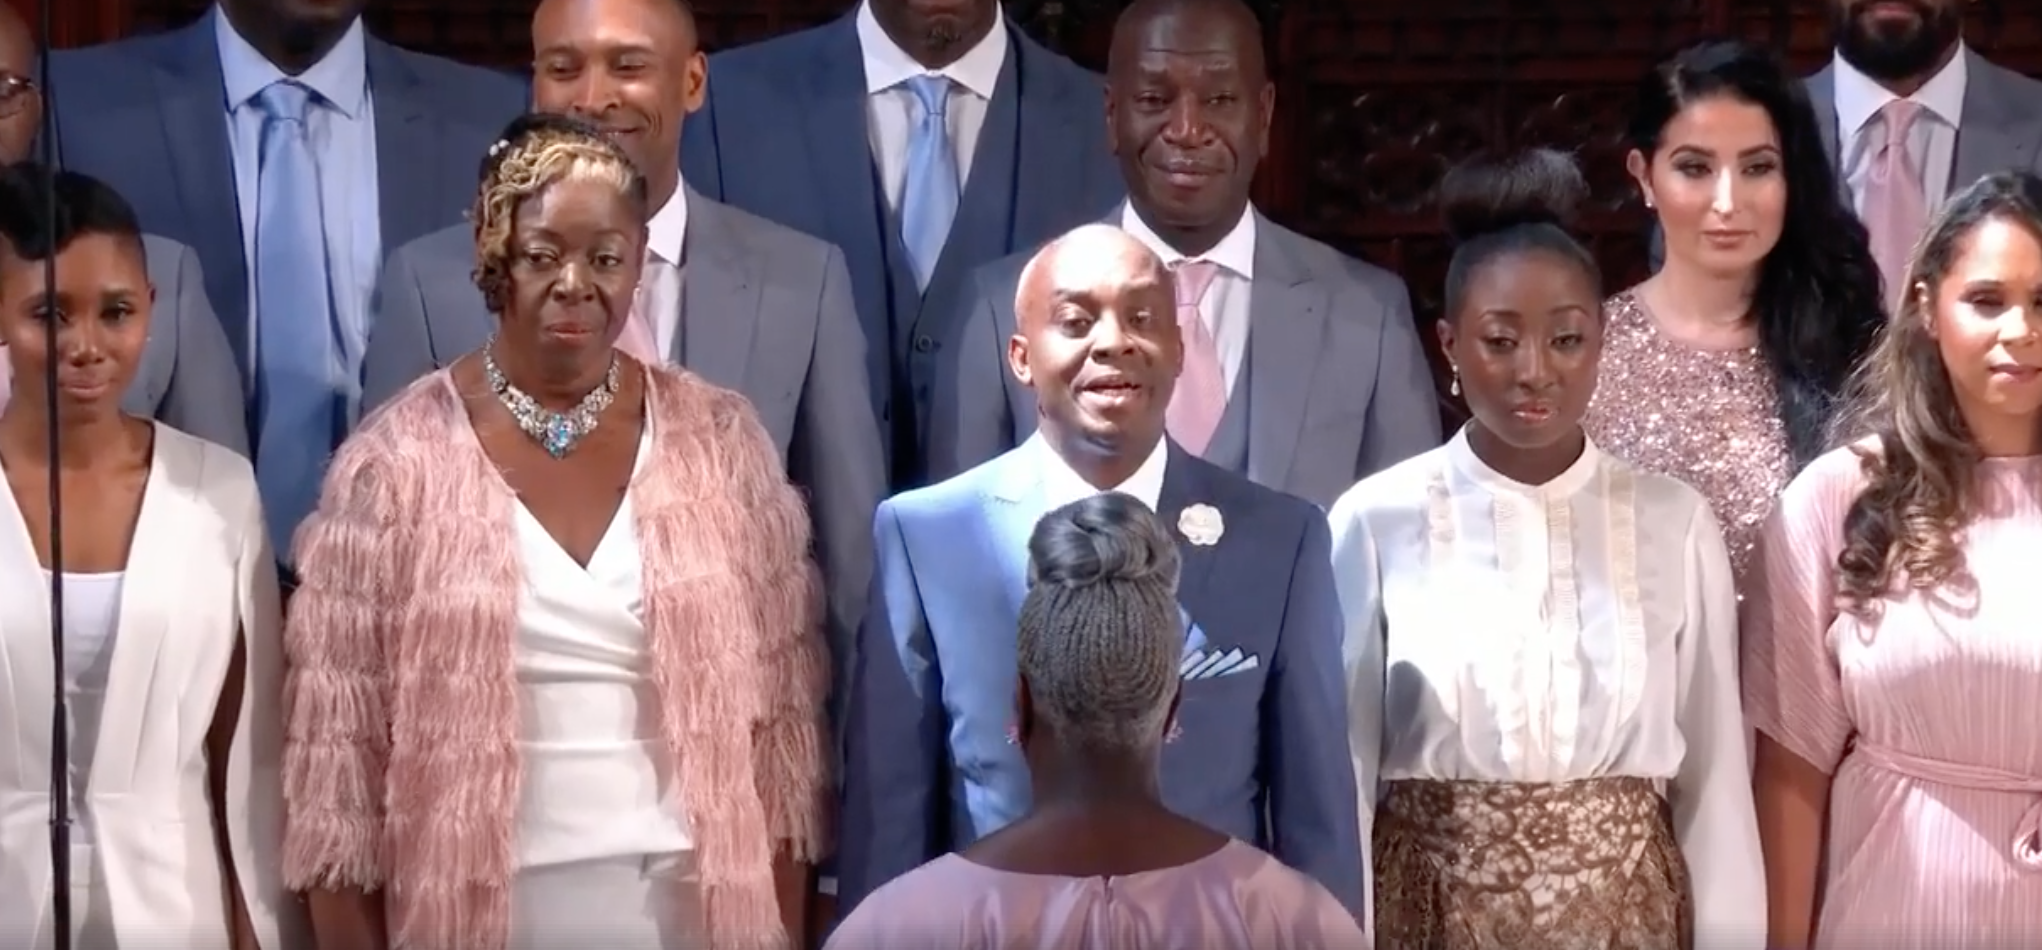 """""""Stand by me"""" performed at the royal wedding by Karen Gibson and The Kingdom Choir."""